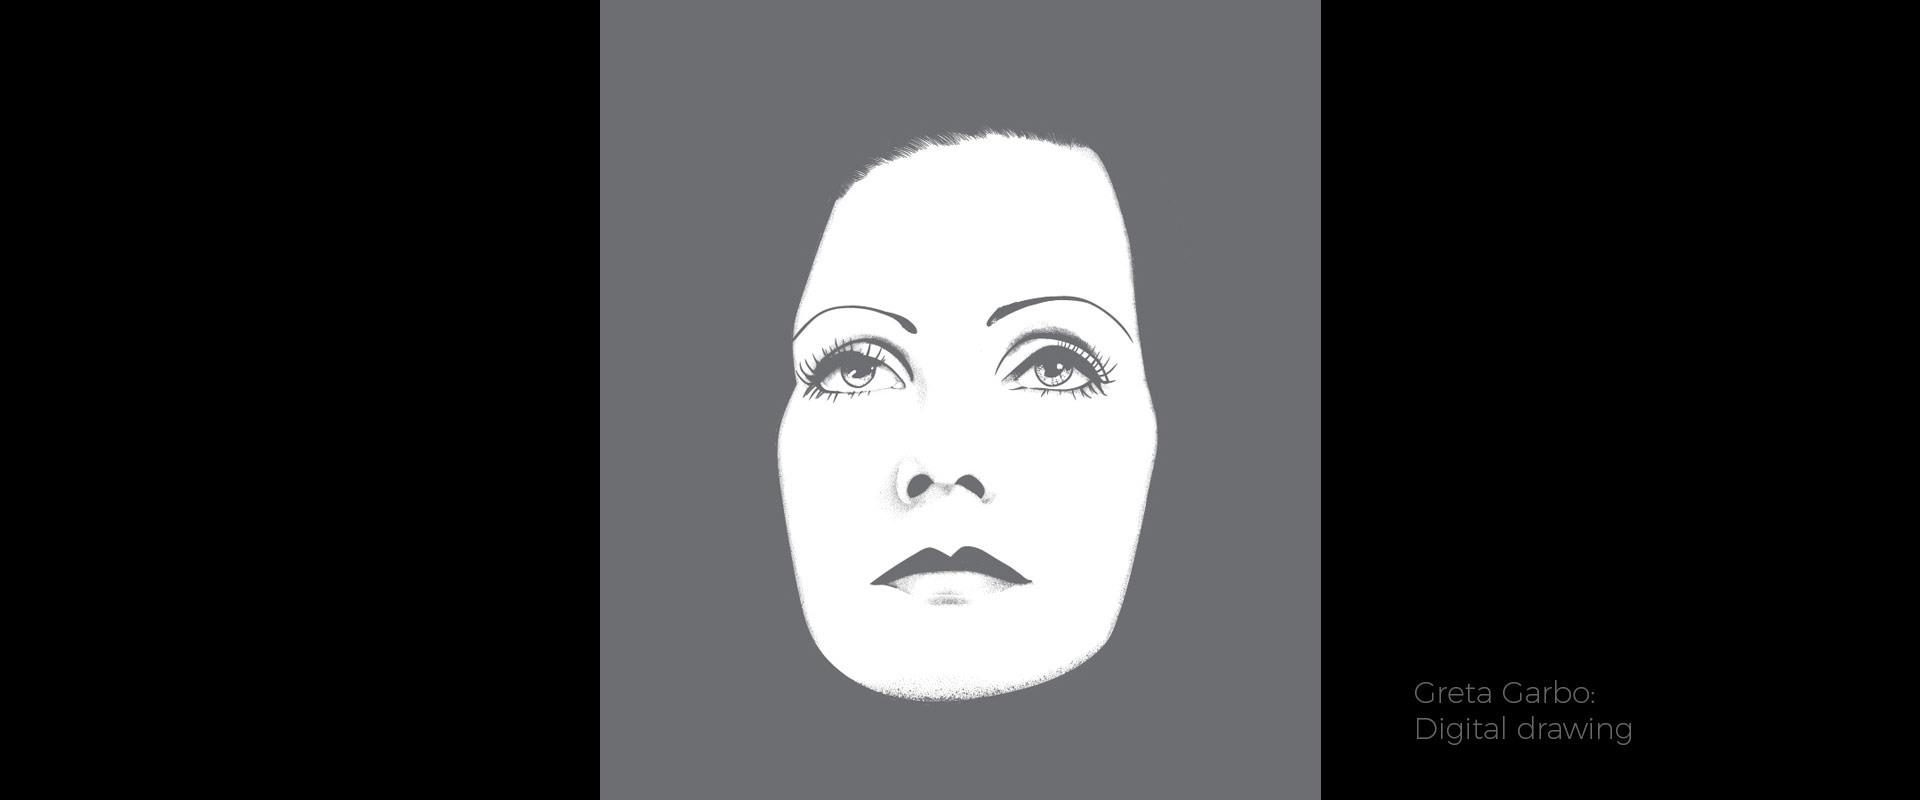 Greta Garbo, illustration by David Hamley